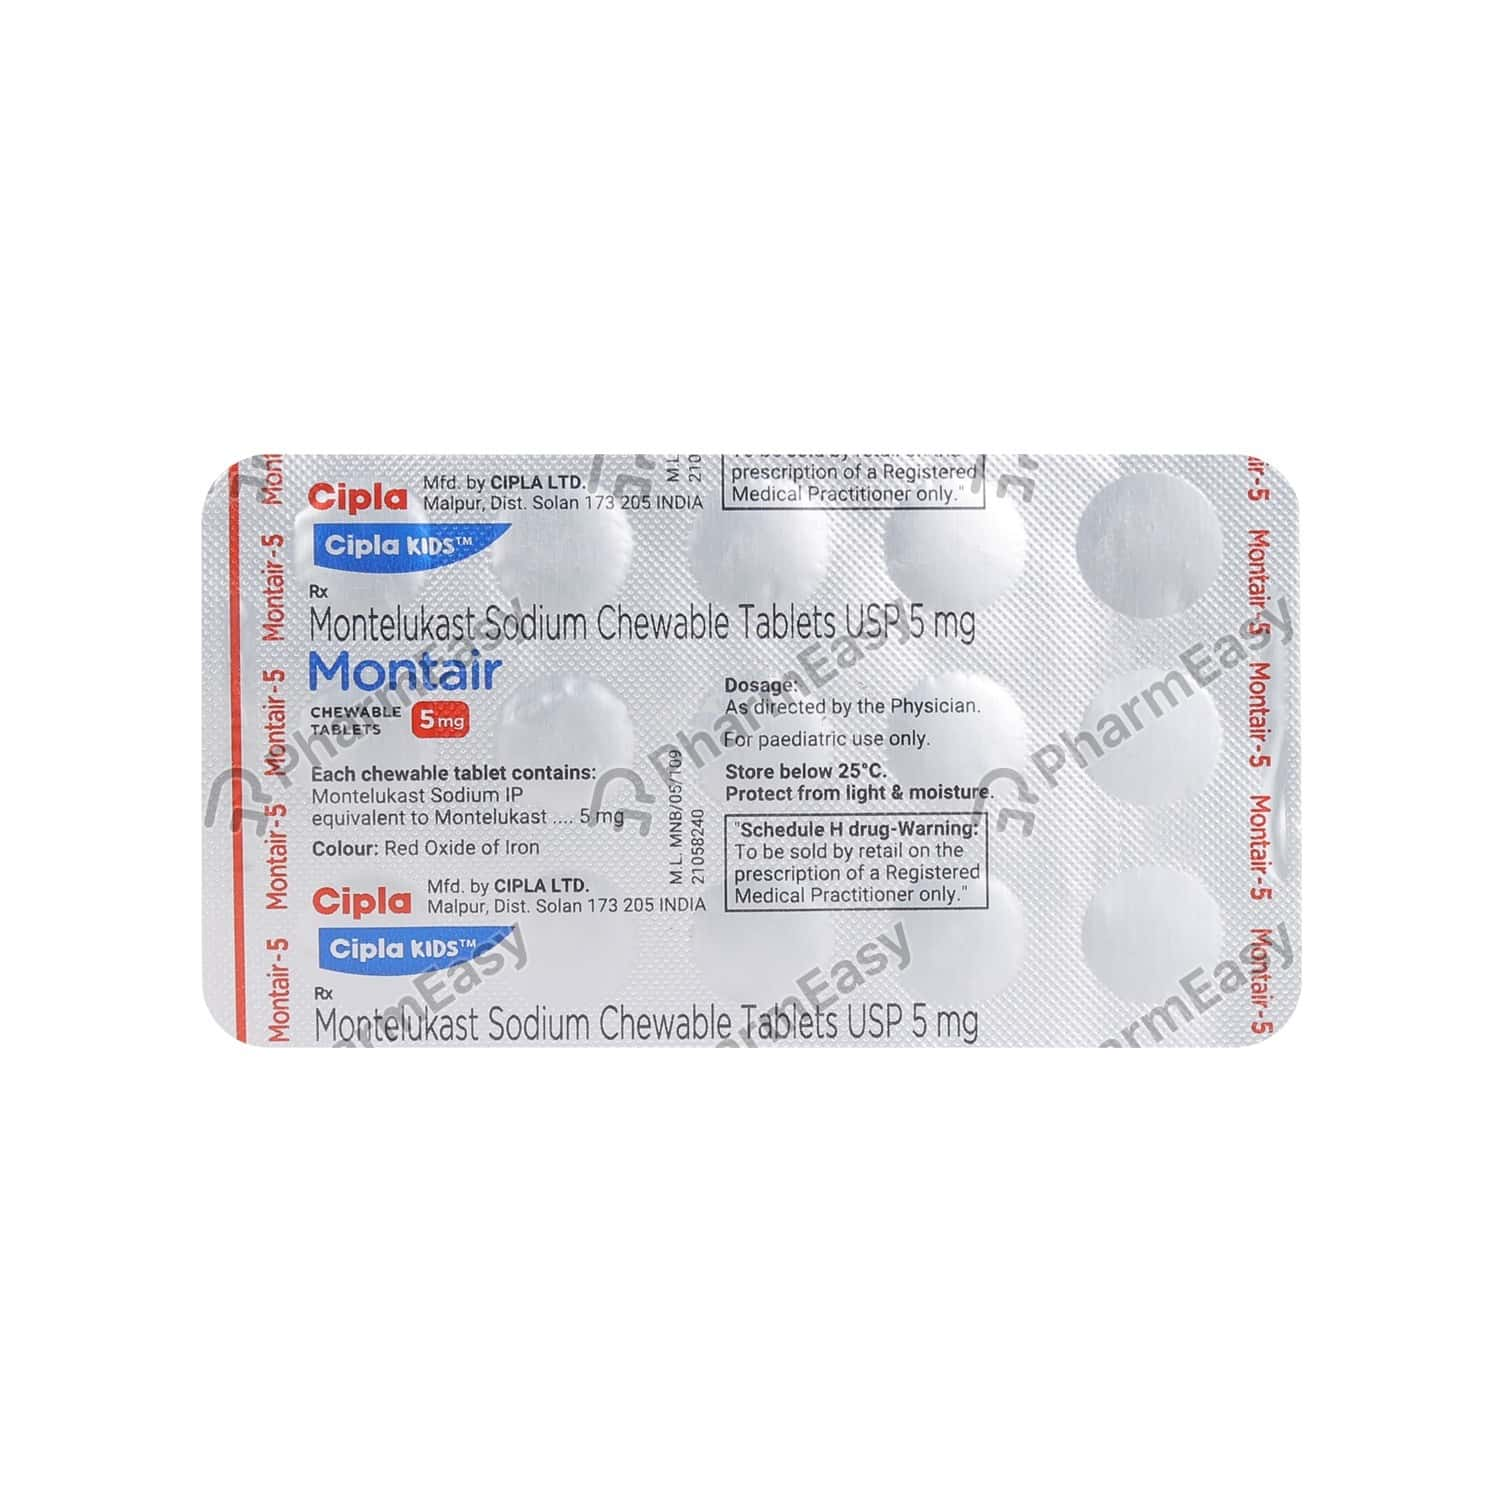 Montair 5mg Strip Of 15 Chewable Tablets